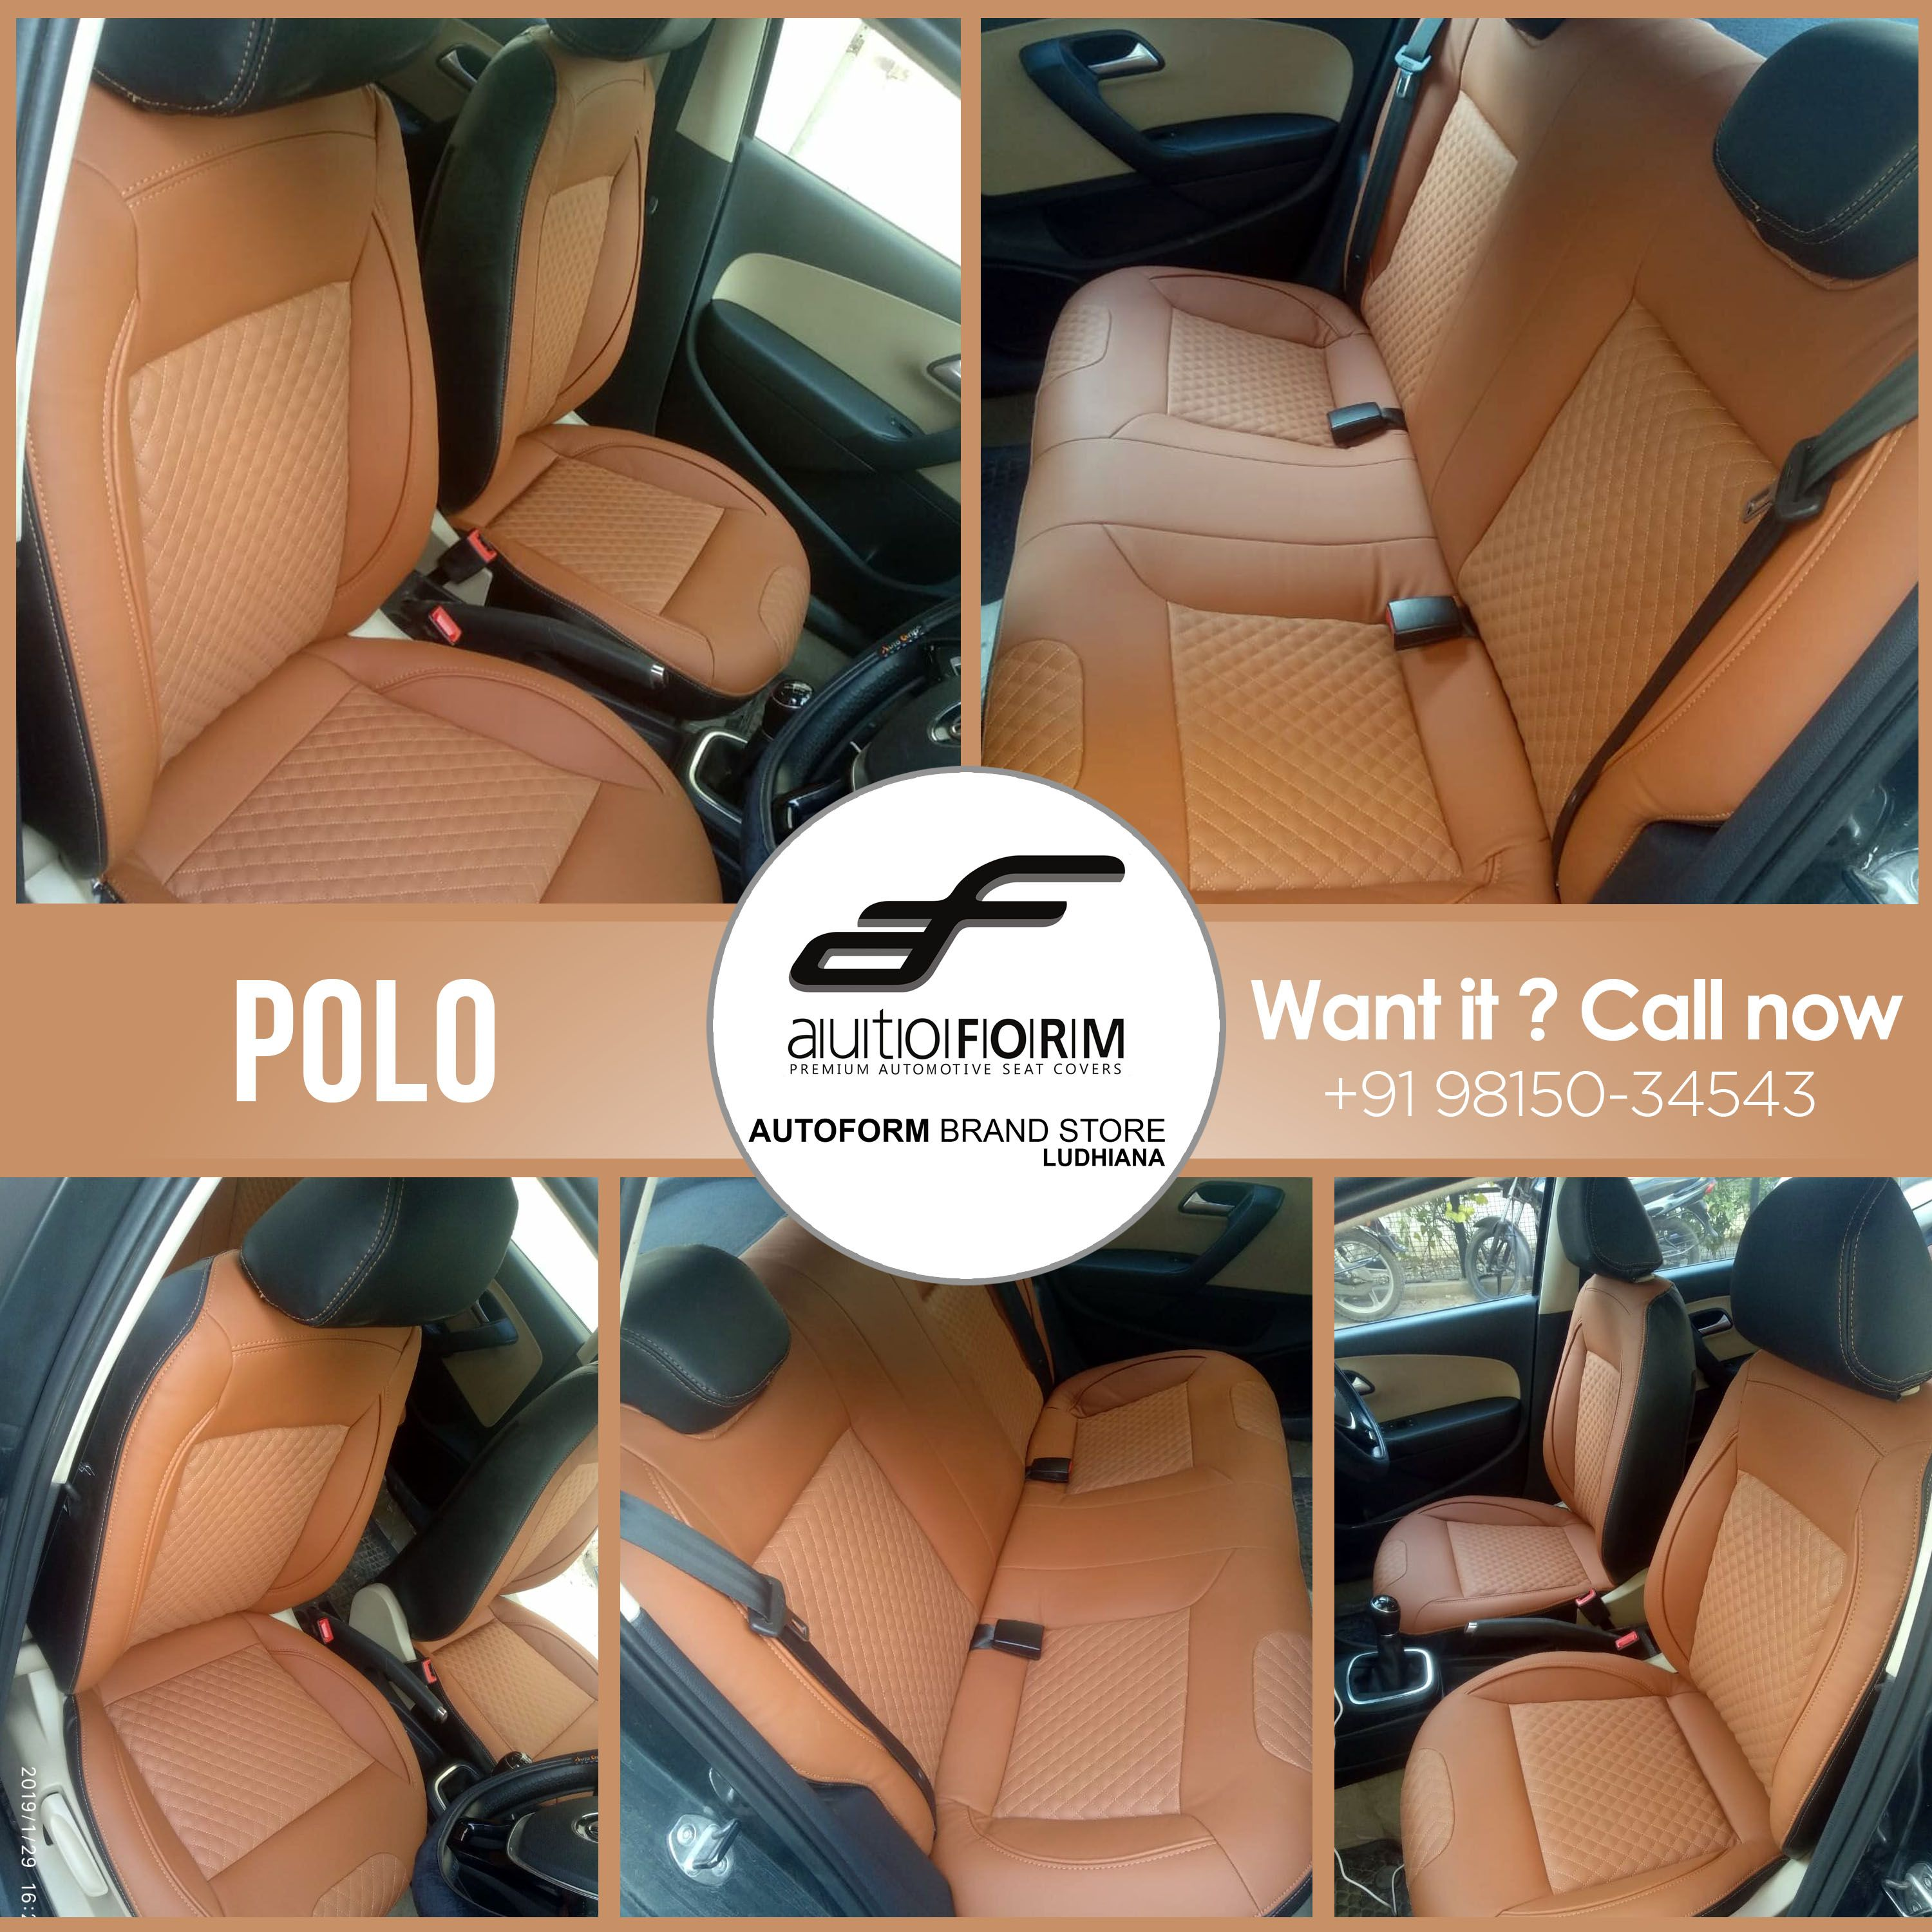 Volkswagen Polo In Branded Nappa Series From Autoform India Seat Covers In Tan Black Colour For This Variant Looks Magn Brand Store Volkswagen Polo Ludhiana